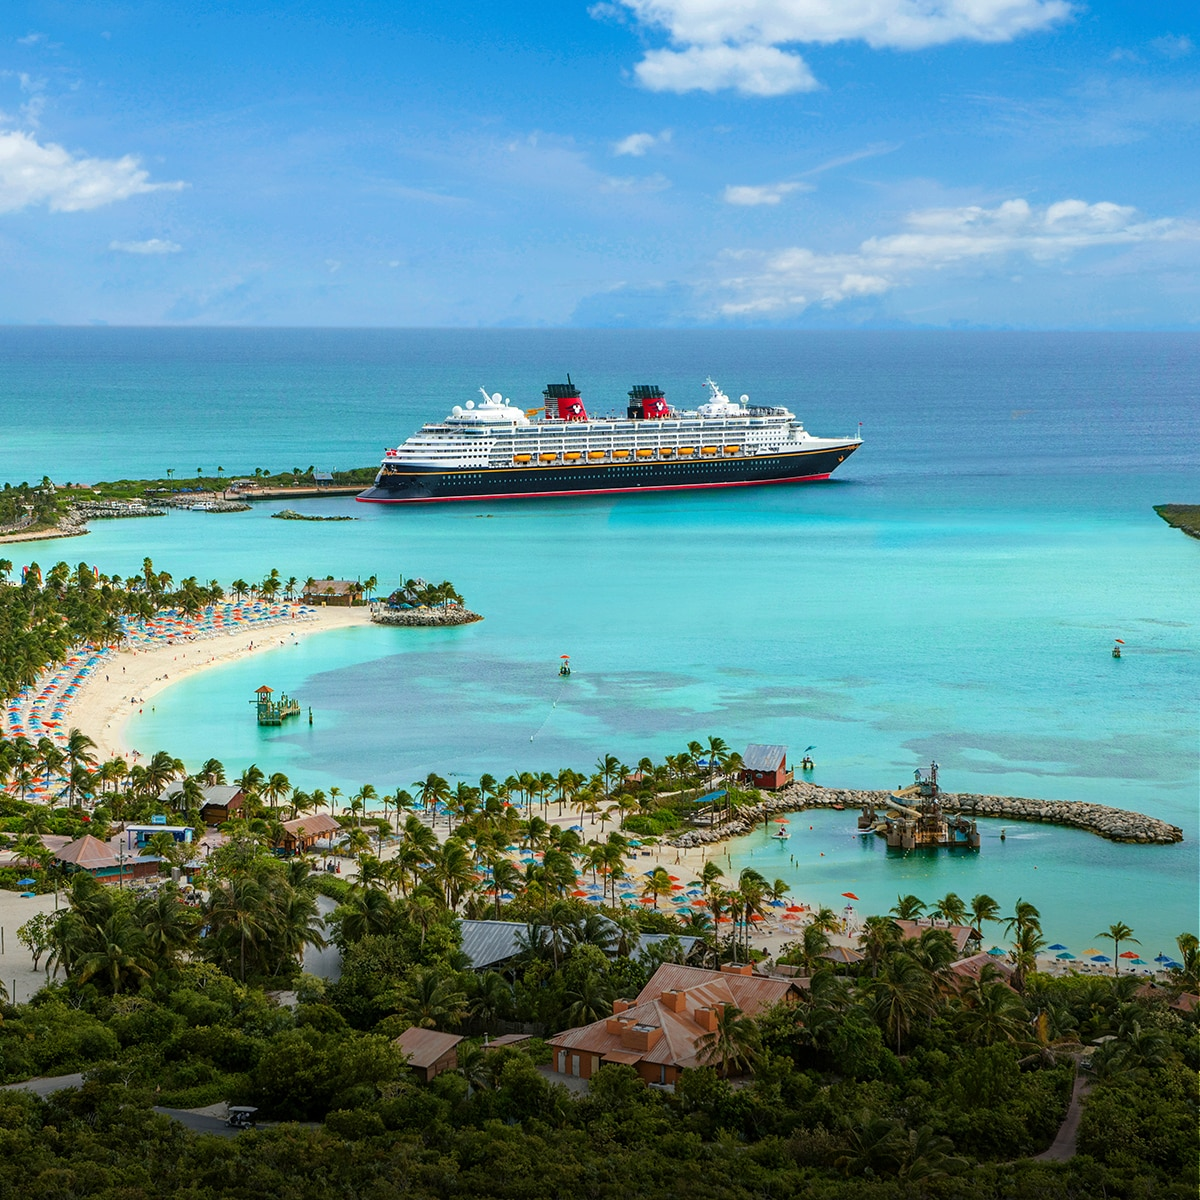 Disney Cruise Ship next to an Island